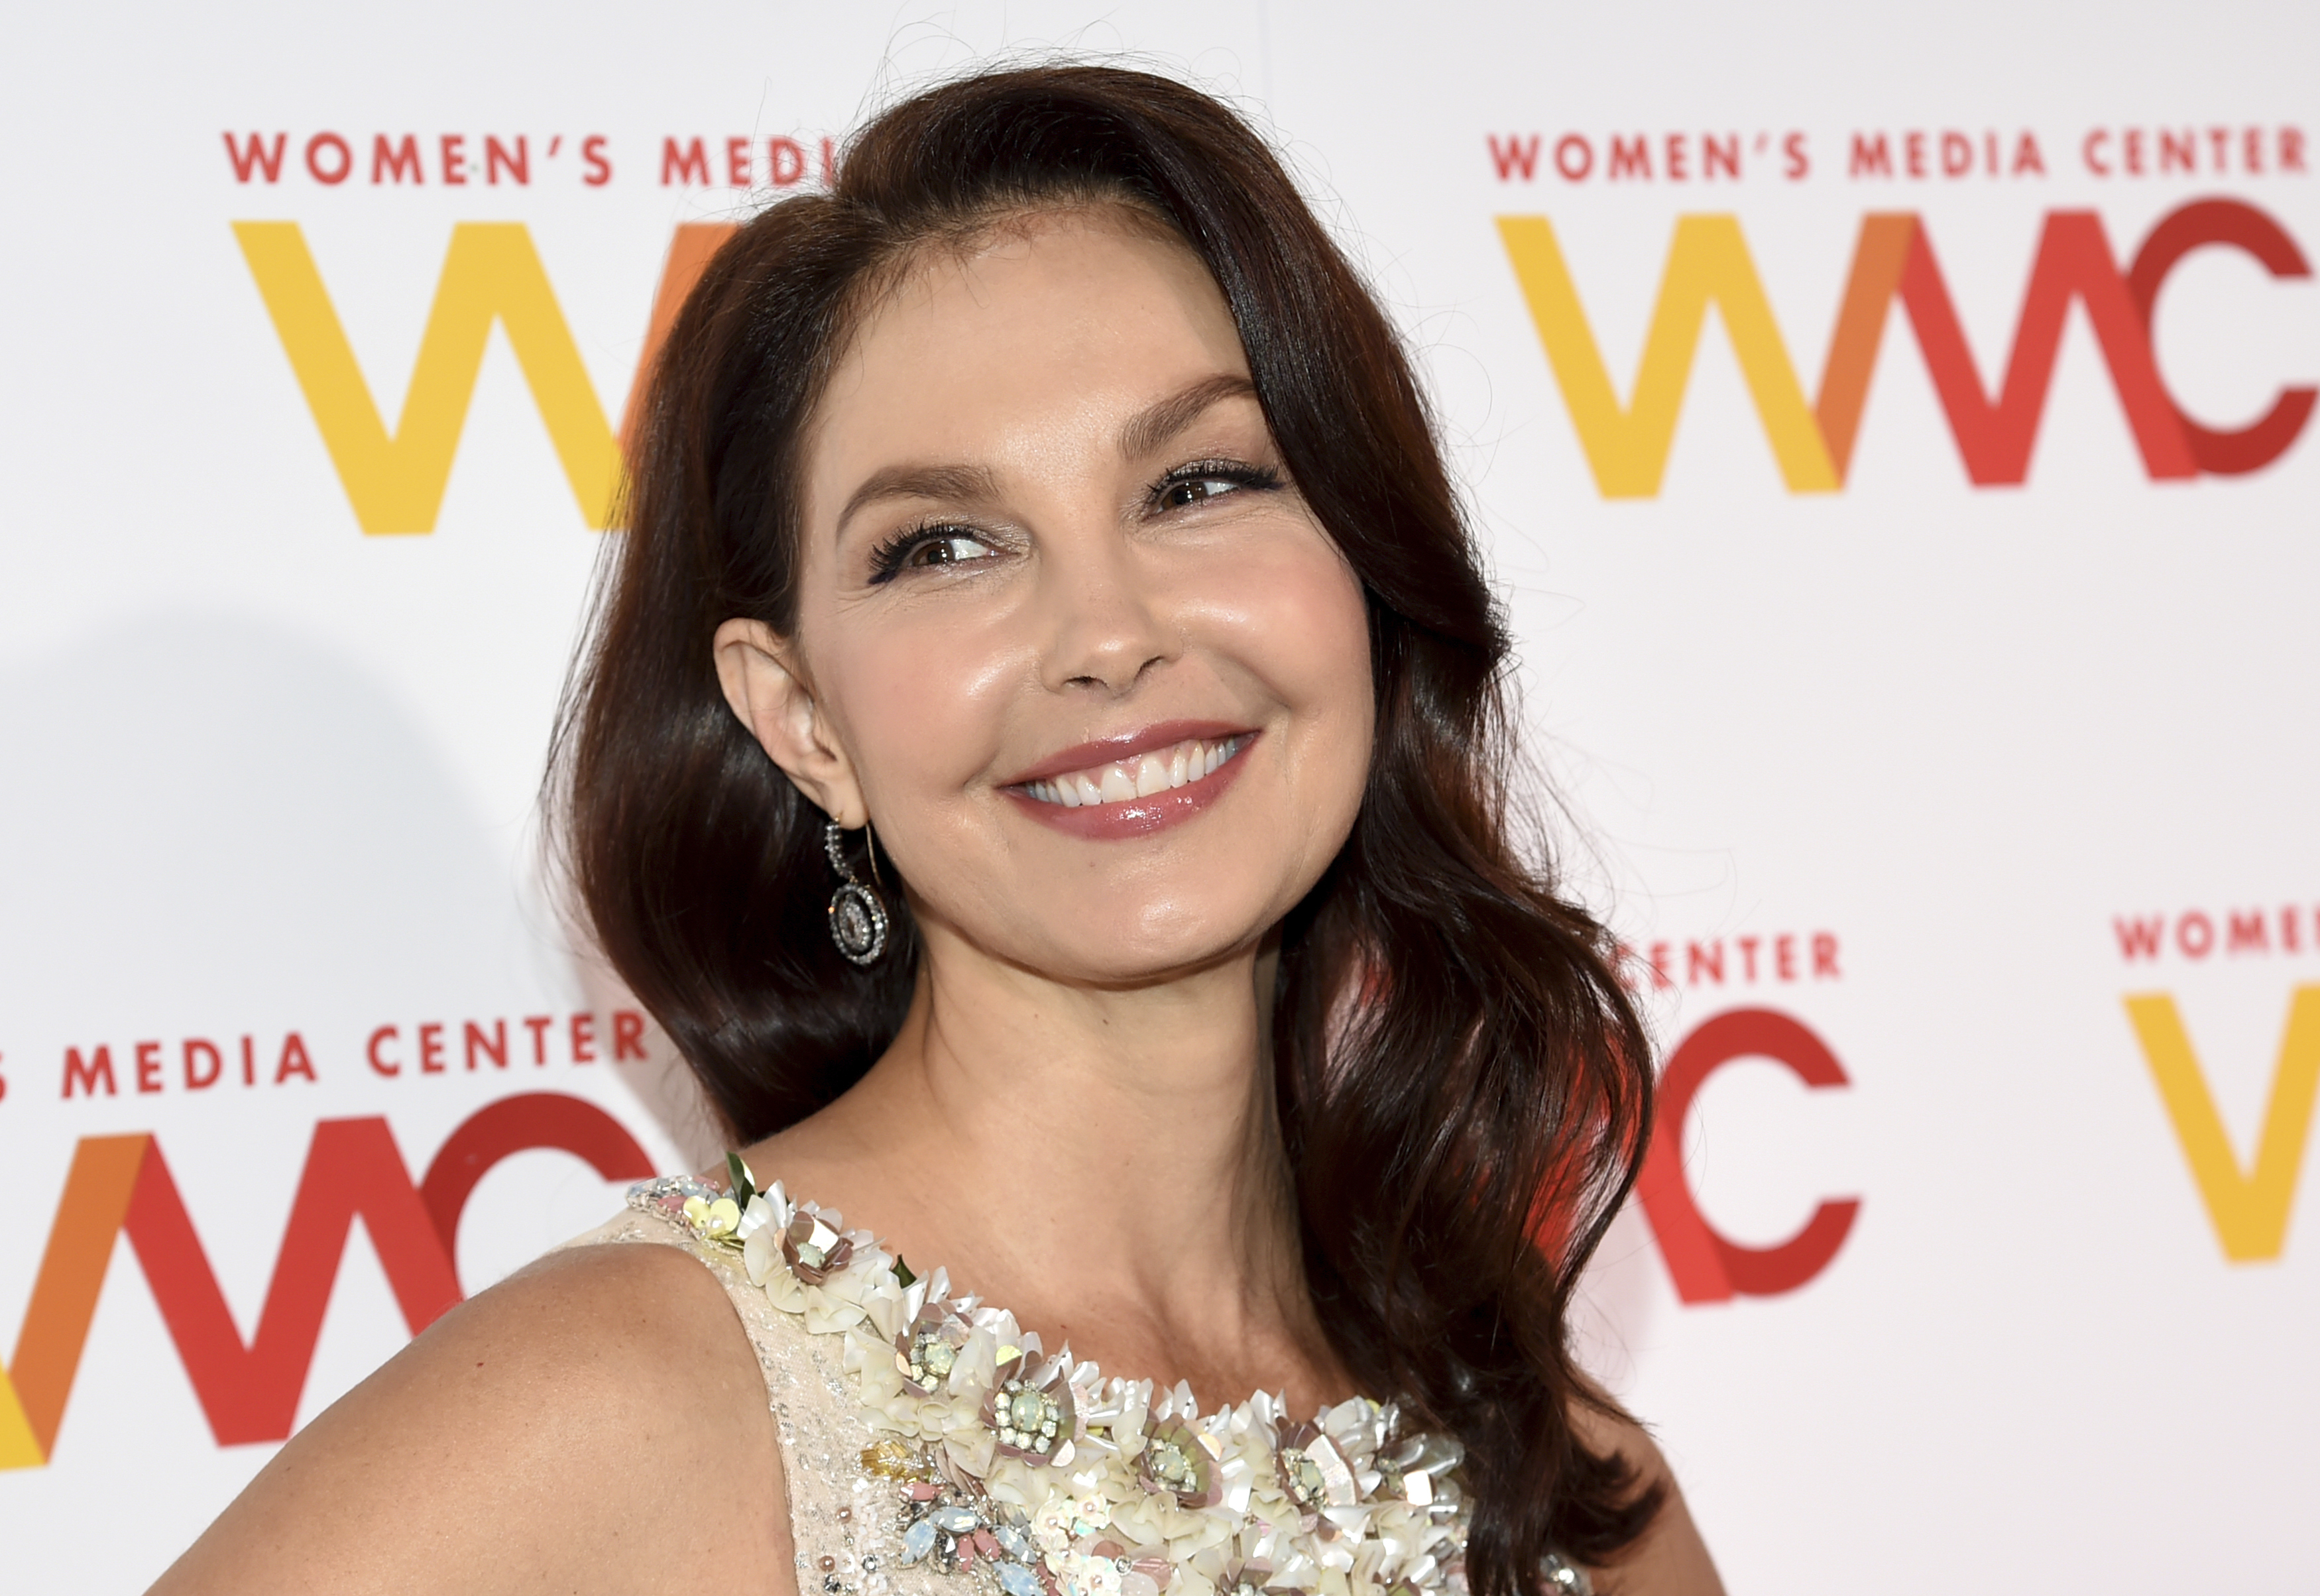 Ashley Judd Reveals She's Walking Again After Congo Accident